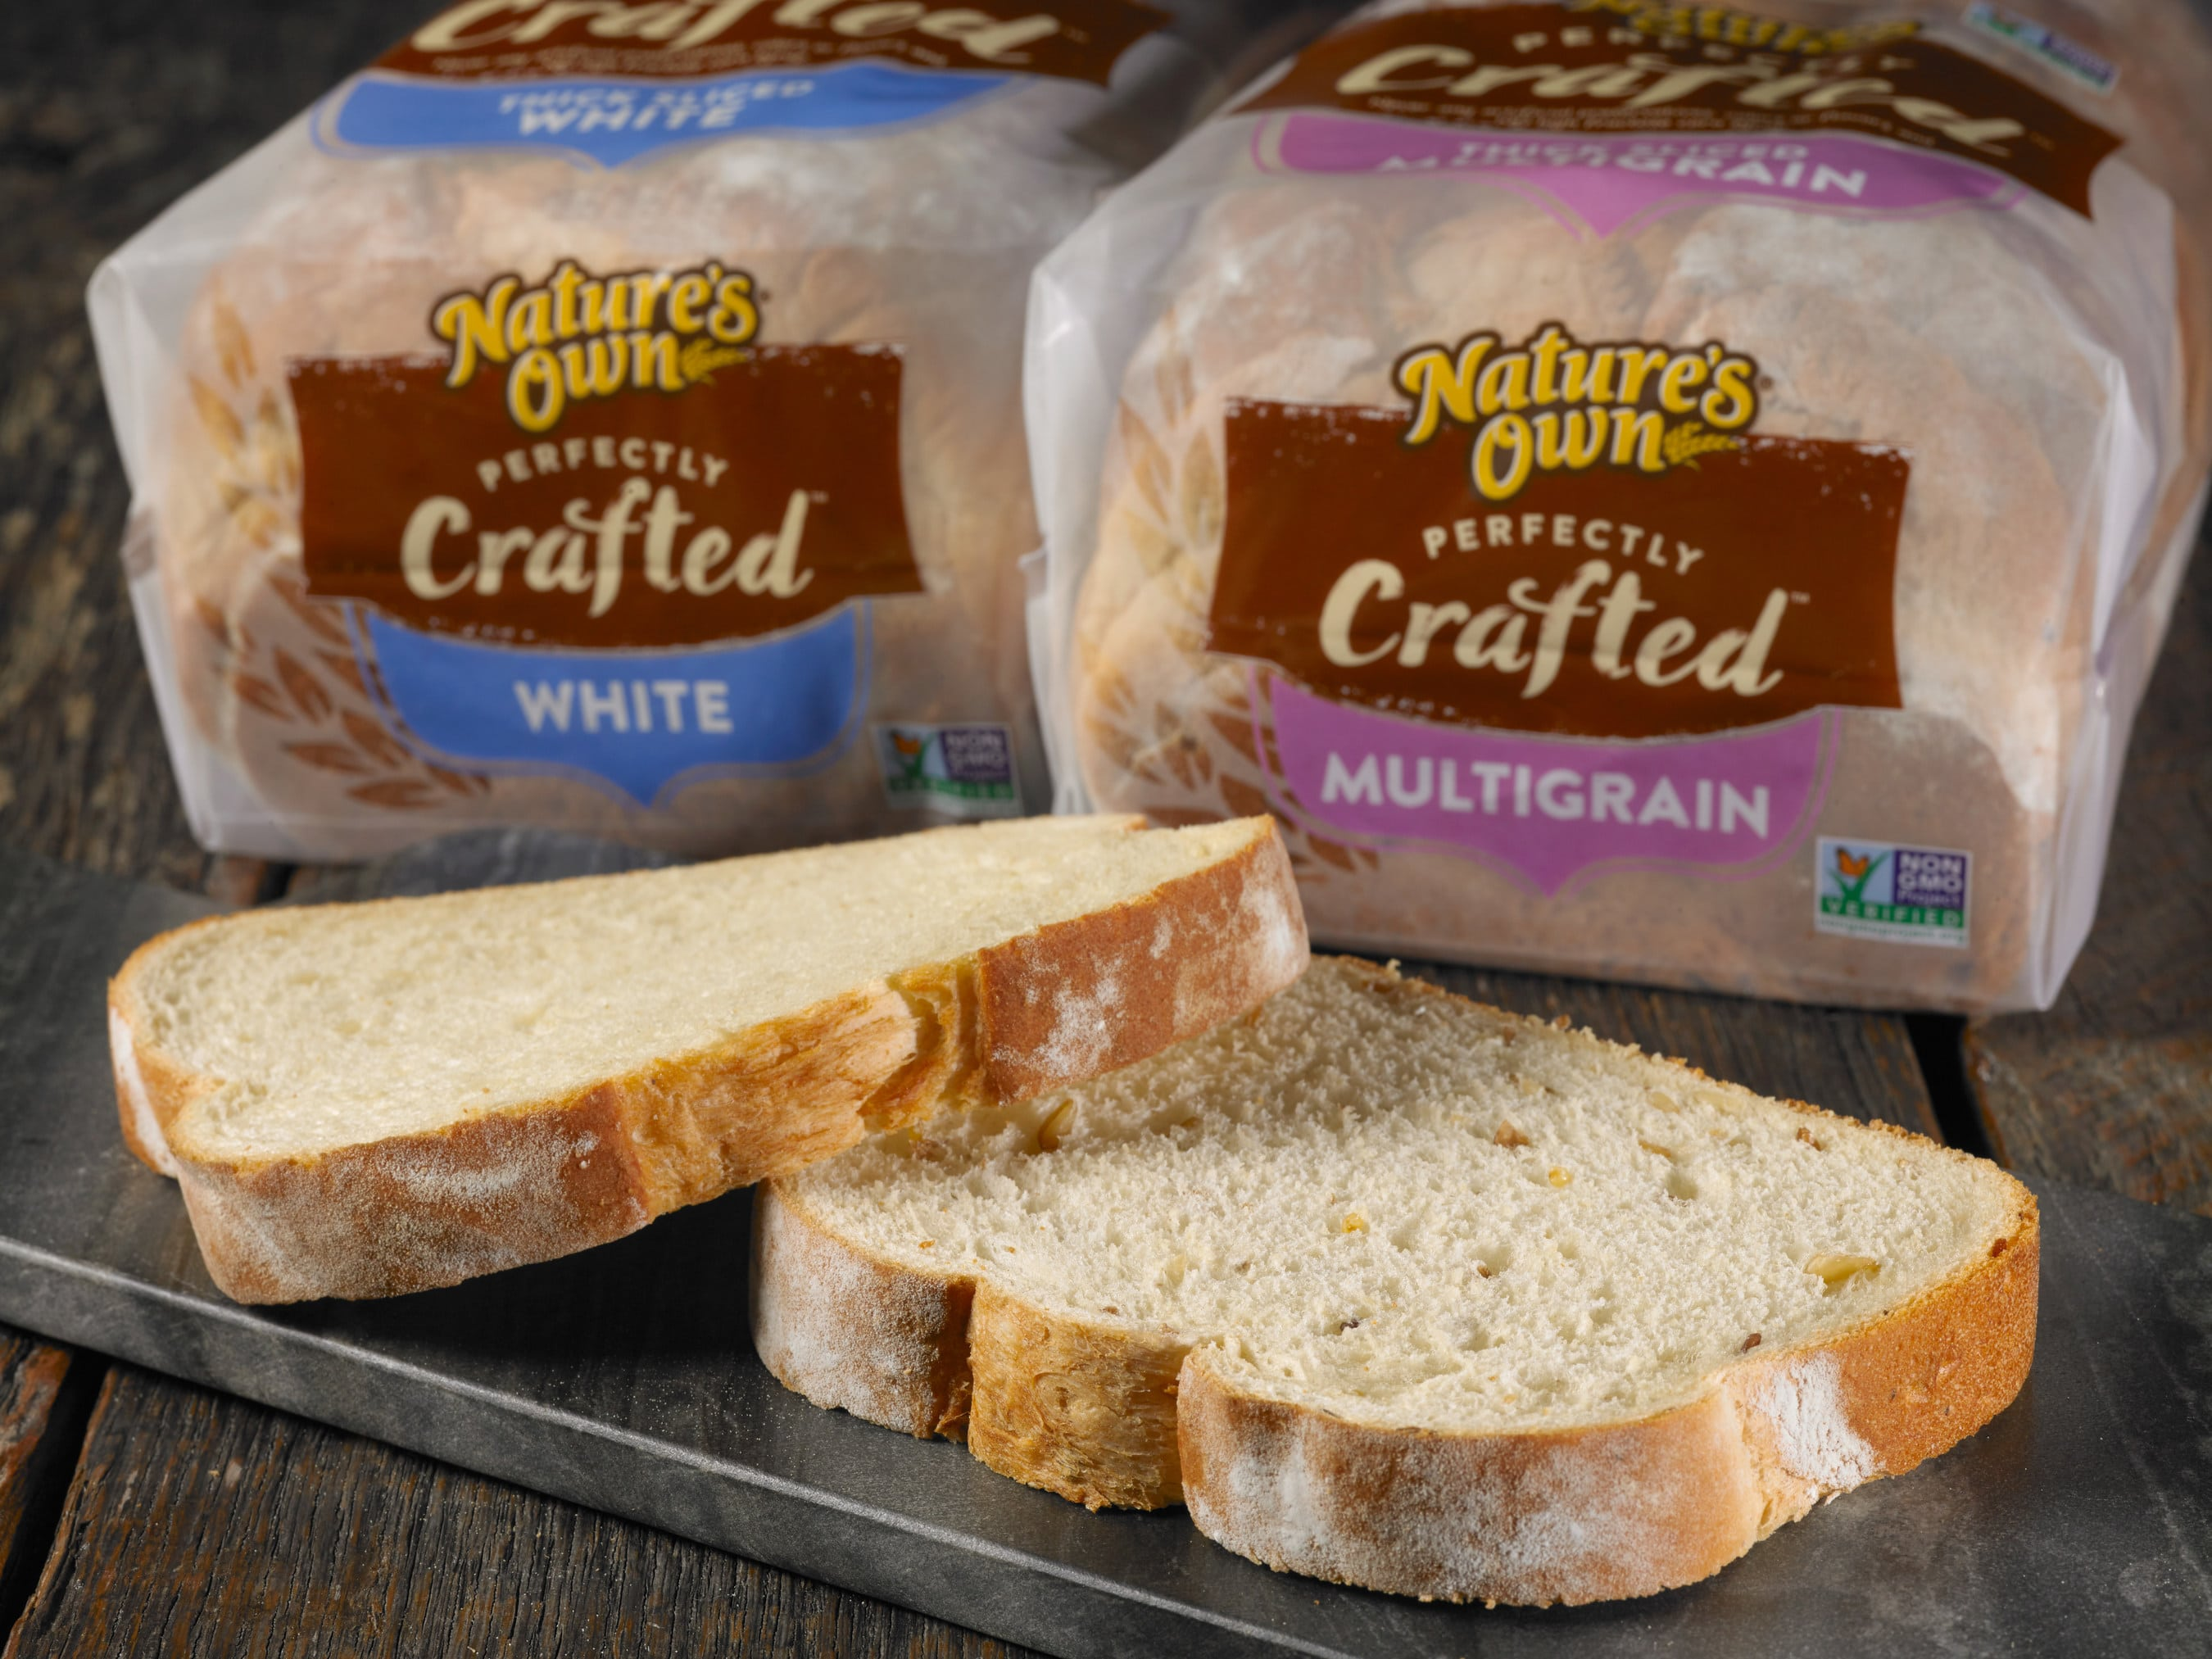 Nature's Own Releases Perfectly Crafted Thick-Sliced Bread